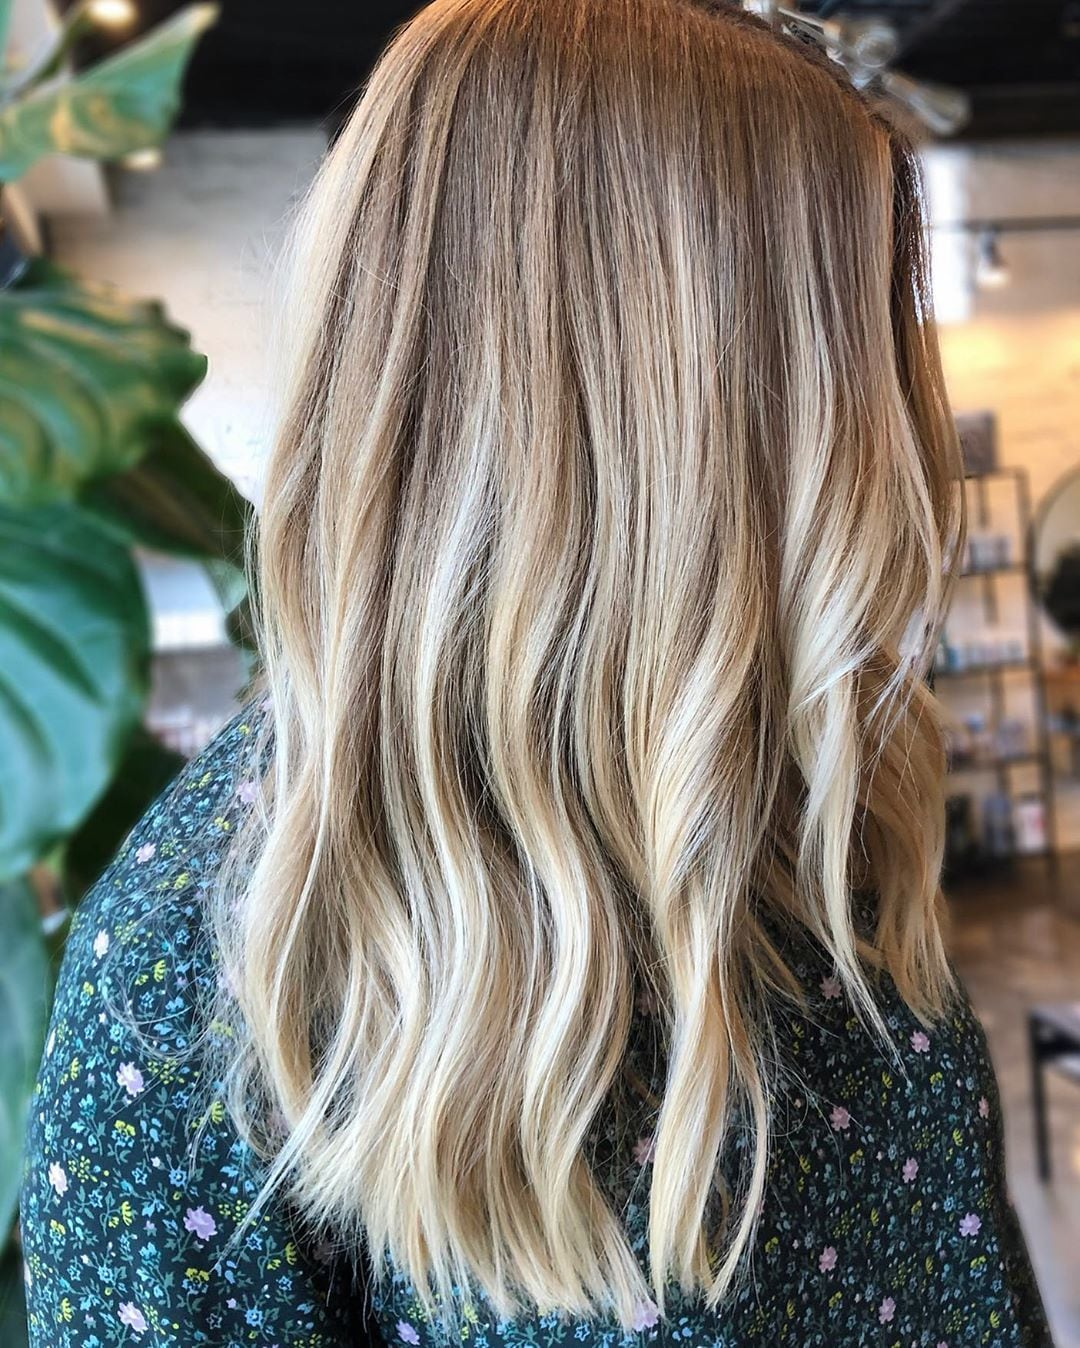 Woman with mid-length wavy honey blonde hair with light blonde highlights